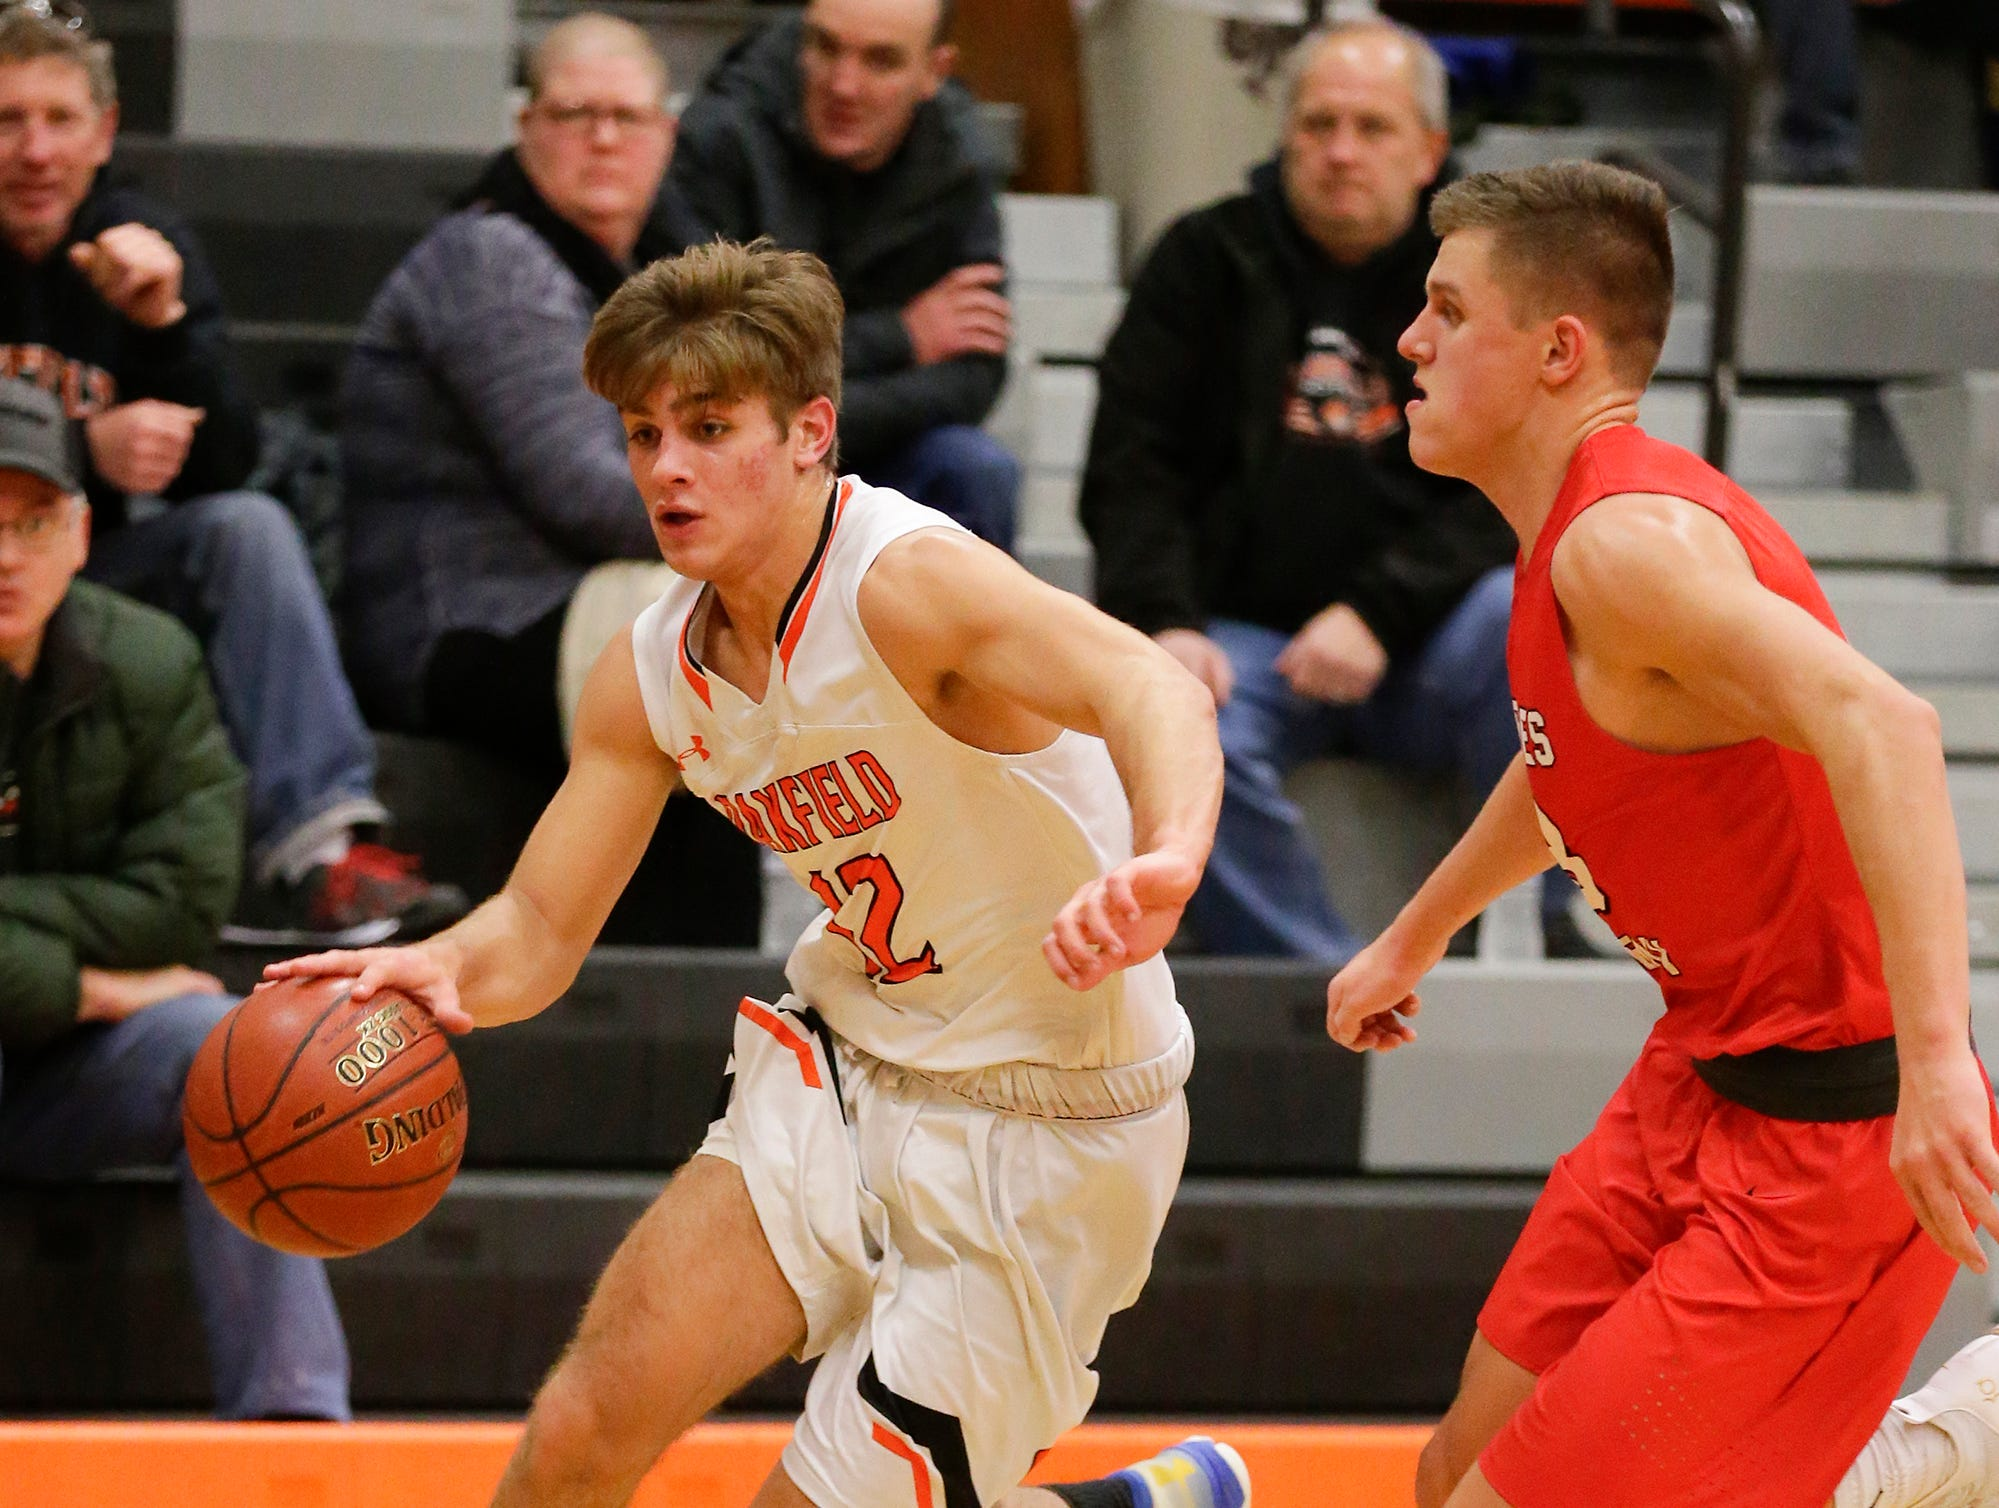 Oakfield High School boys basketball's Zach Seyfert works his way past Lourdes Academy's Caden Chier during their game Thursday, January 24, 2019 in Oakfield. Lourdes Academy won the game 83-48. Doug Raflik/USA TODAY NETWORK-Wisconsin